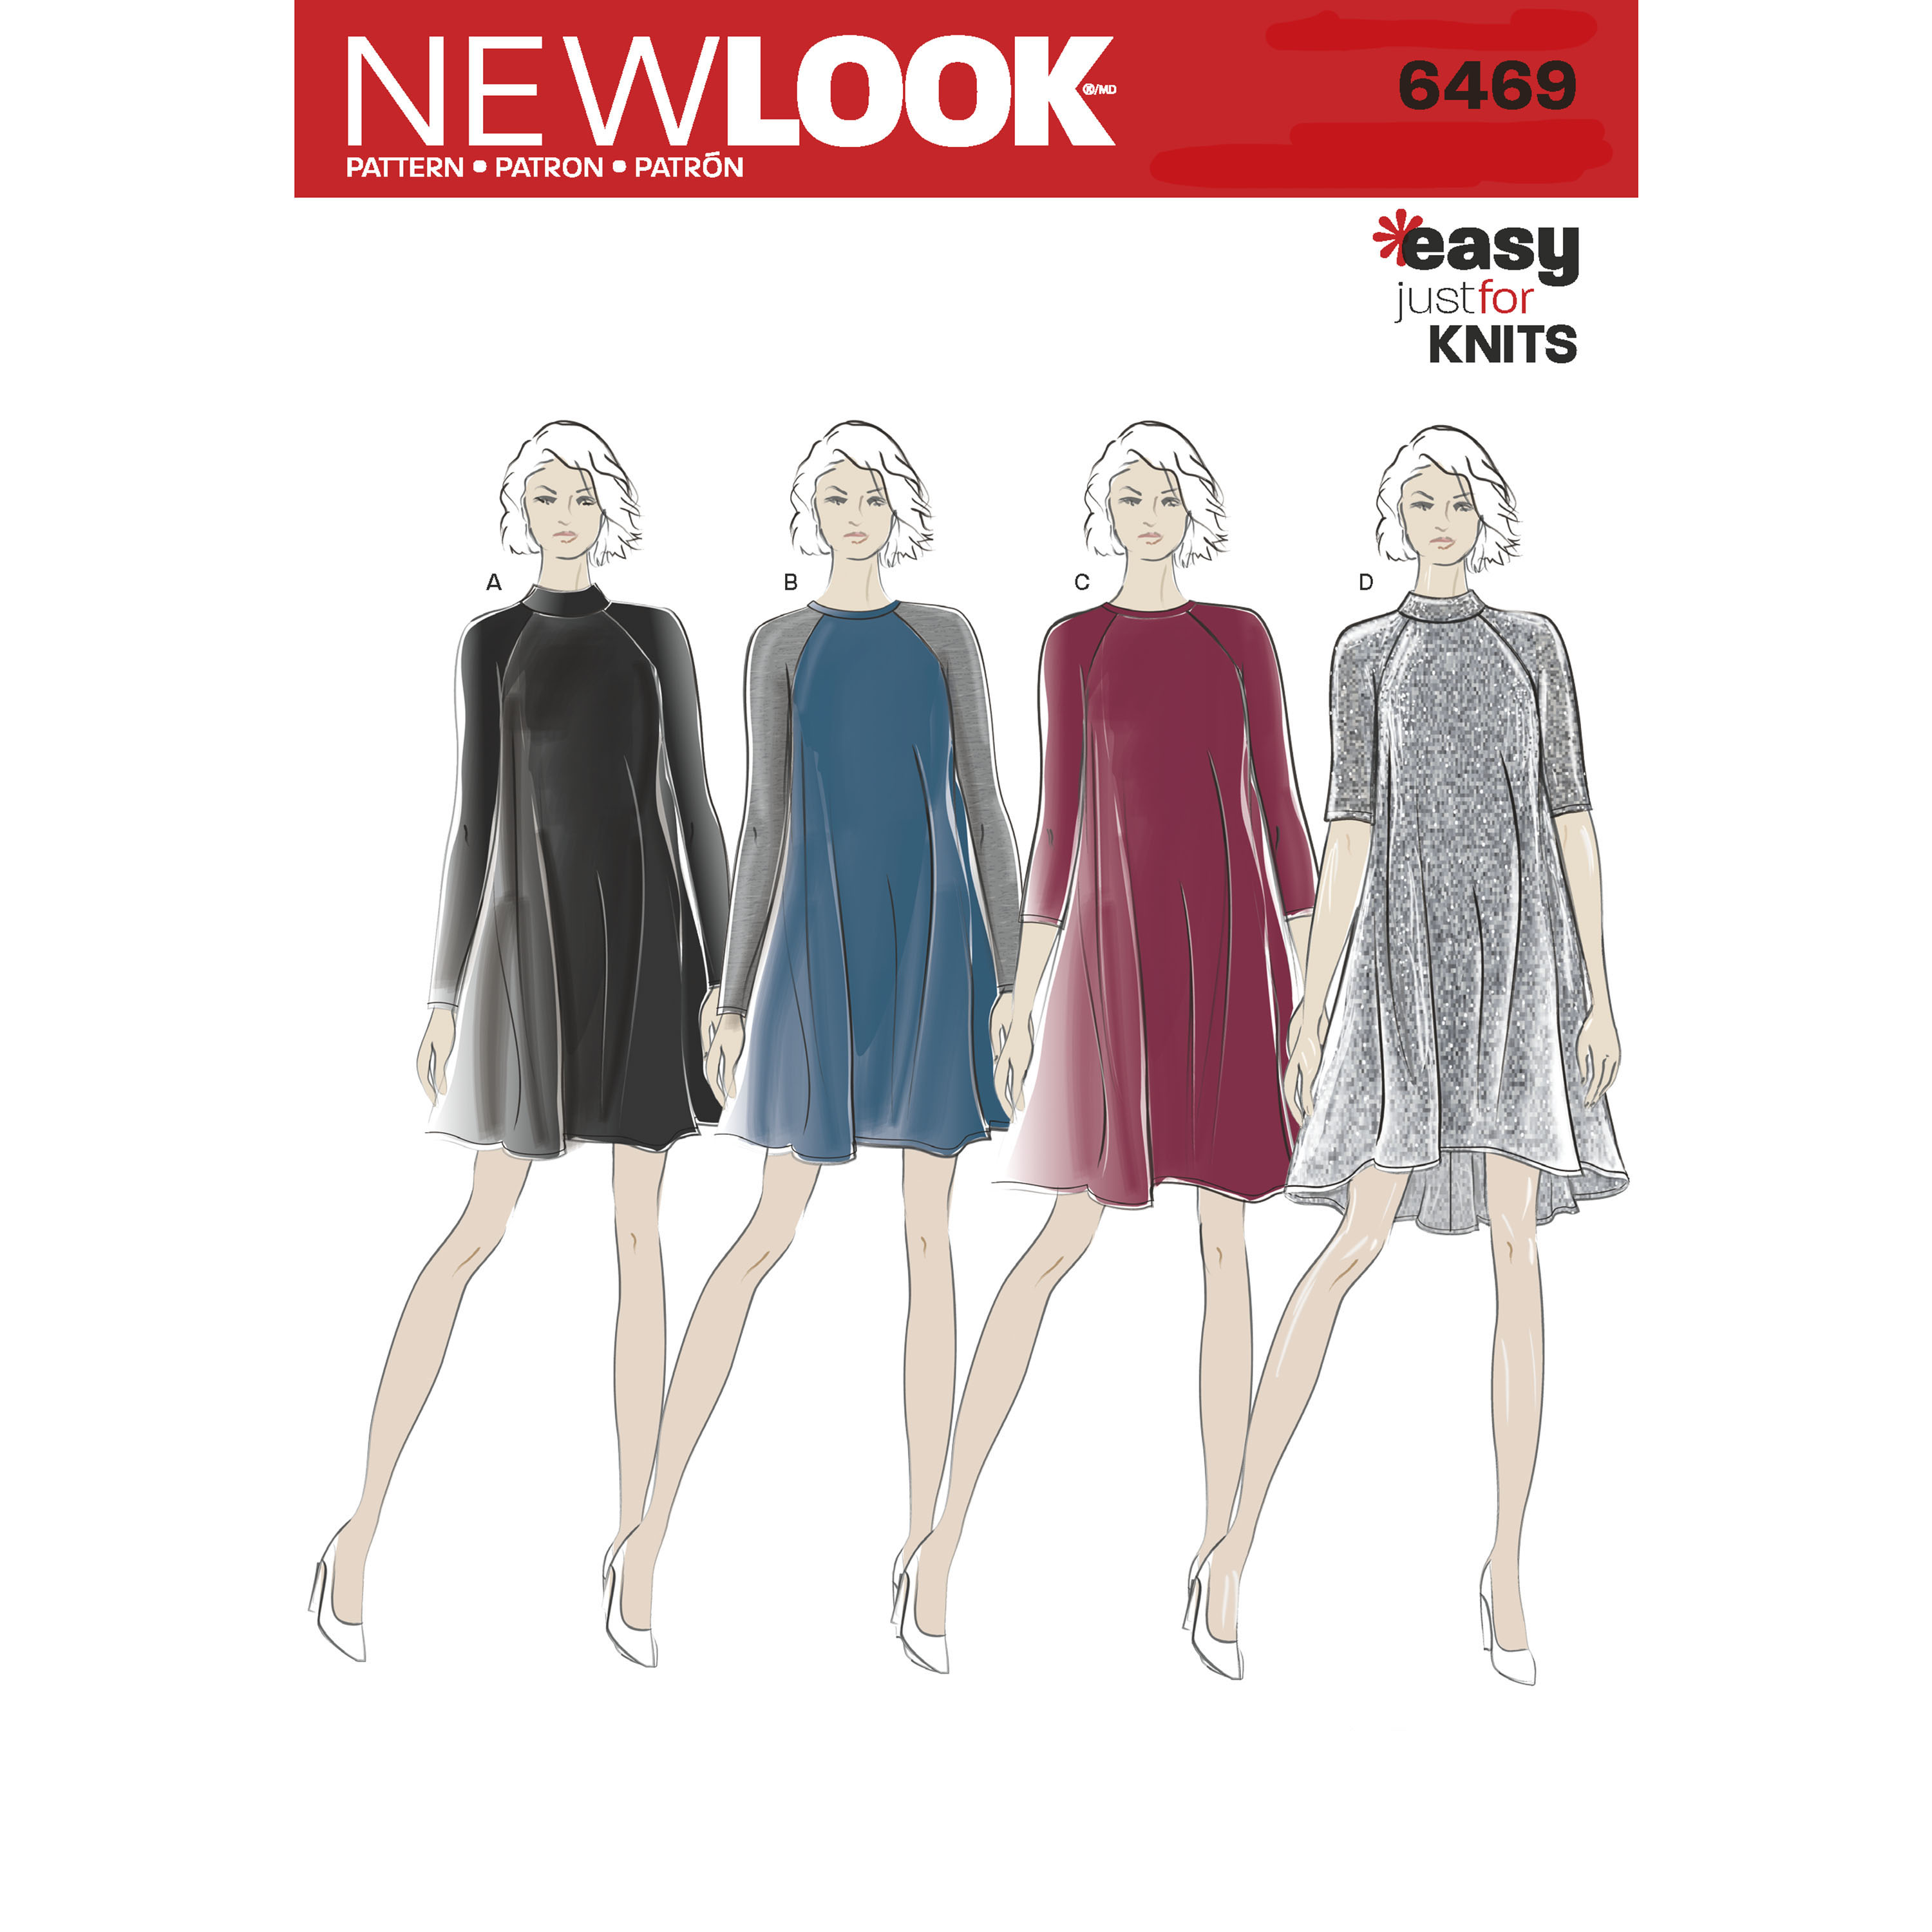 New Look 6469 Misses\' Easy Knit Dress with Length and Sleeve Variations